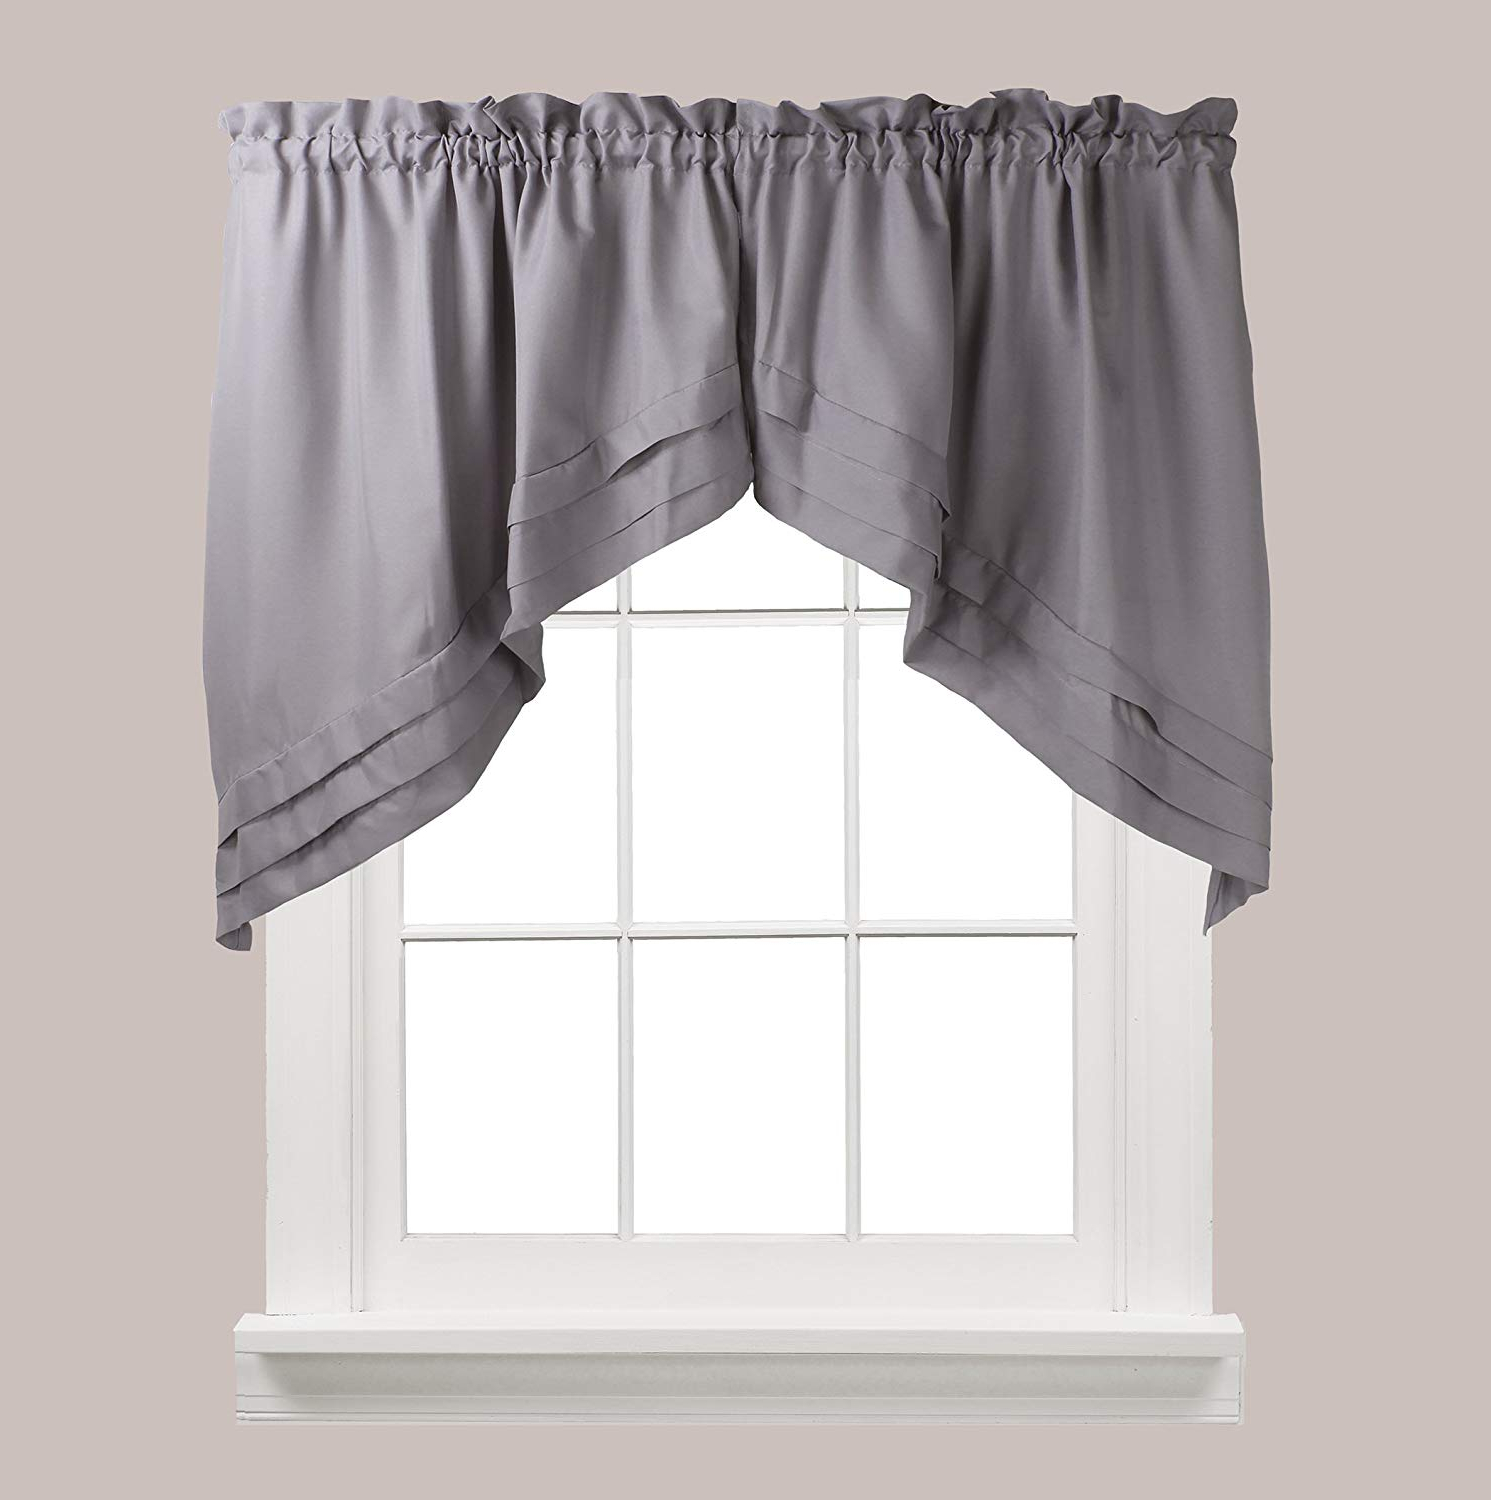 Skl Home Holden Tier Curtain Pair, Dove Gray, 57 Inches X 24 Inches Within 2021 Dove Gray Curtain Tier Pairs (View 15 of 20)